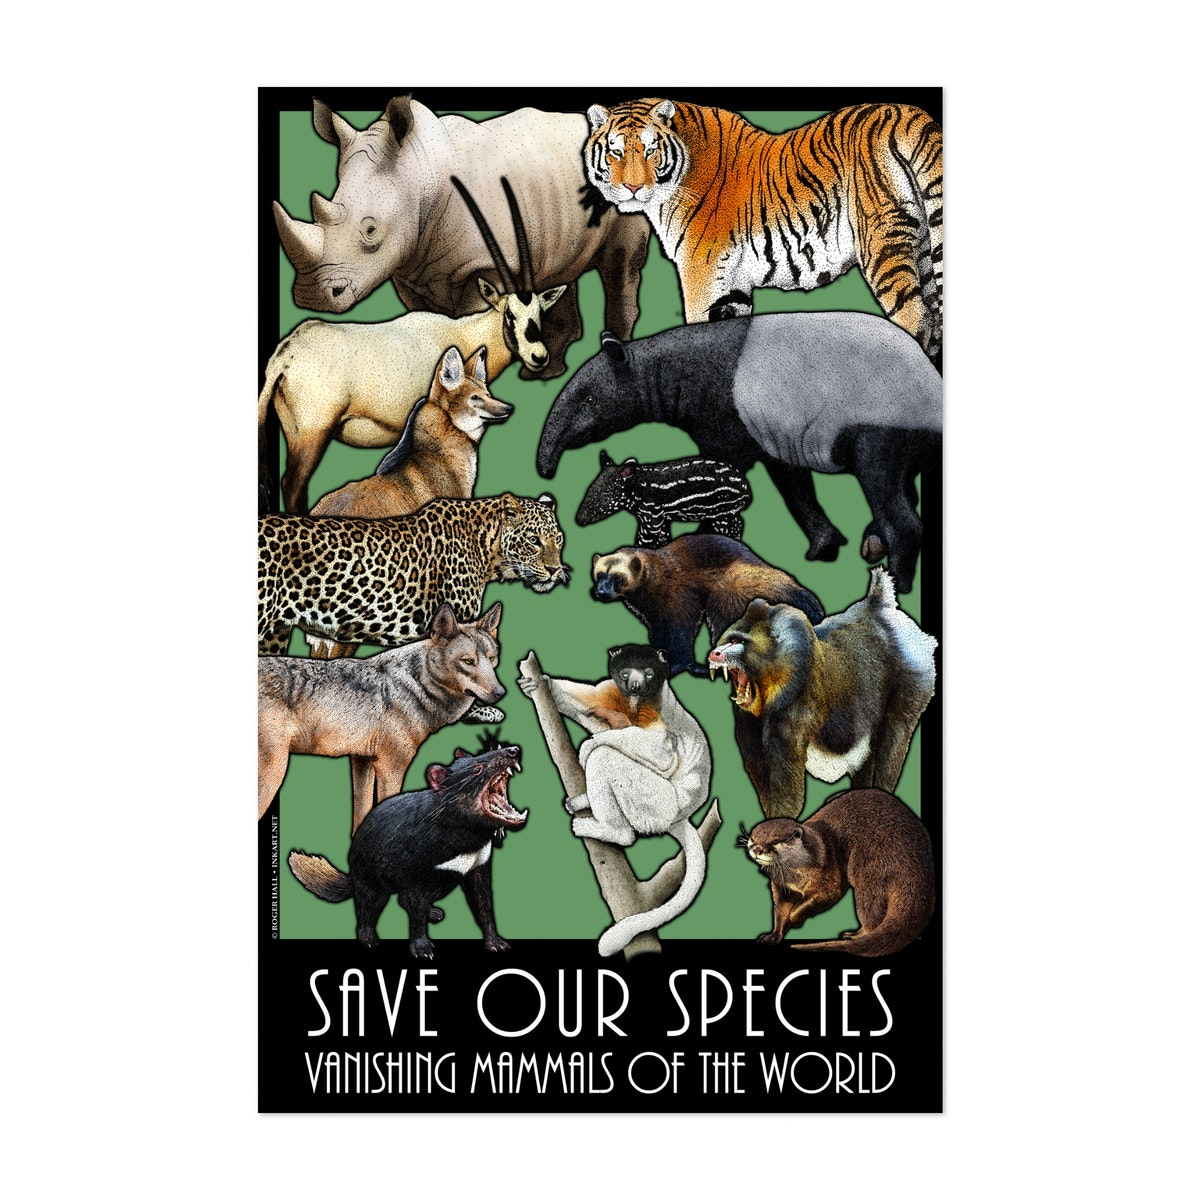 Save Our Species - Vanishing Mammals